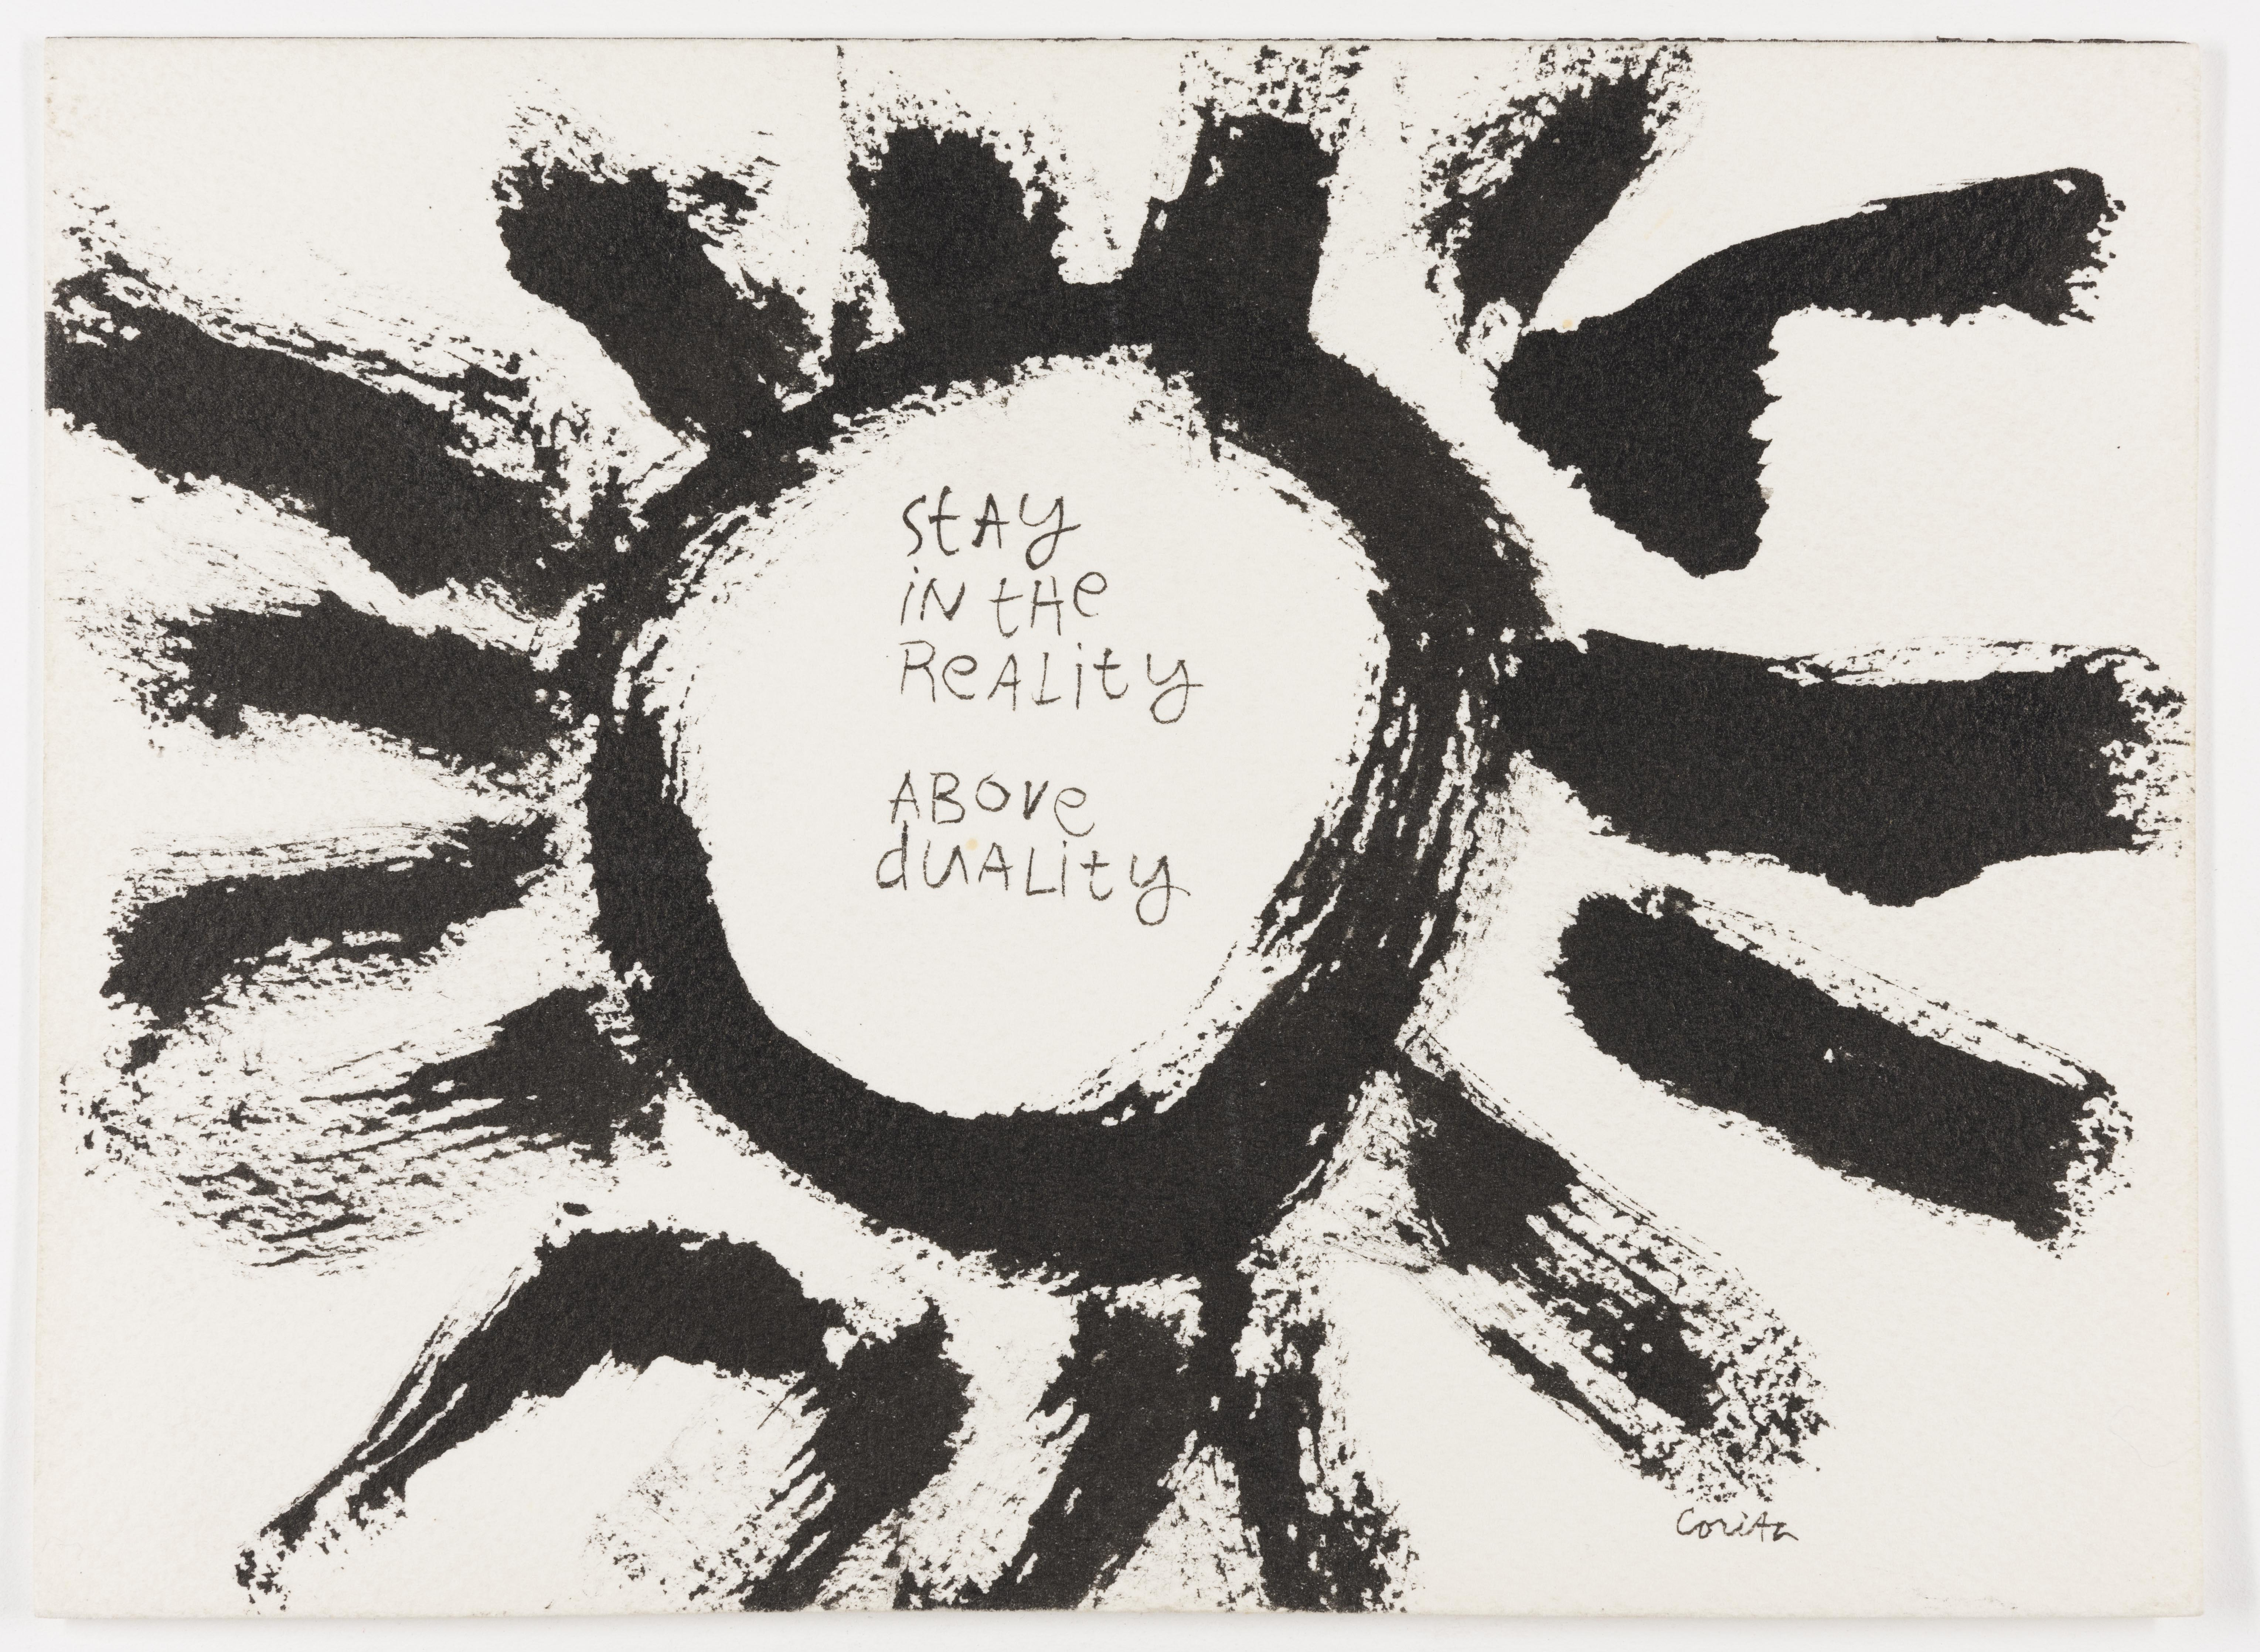 Corita Kent, Untitled, 1974